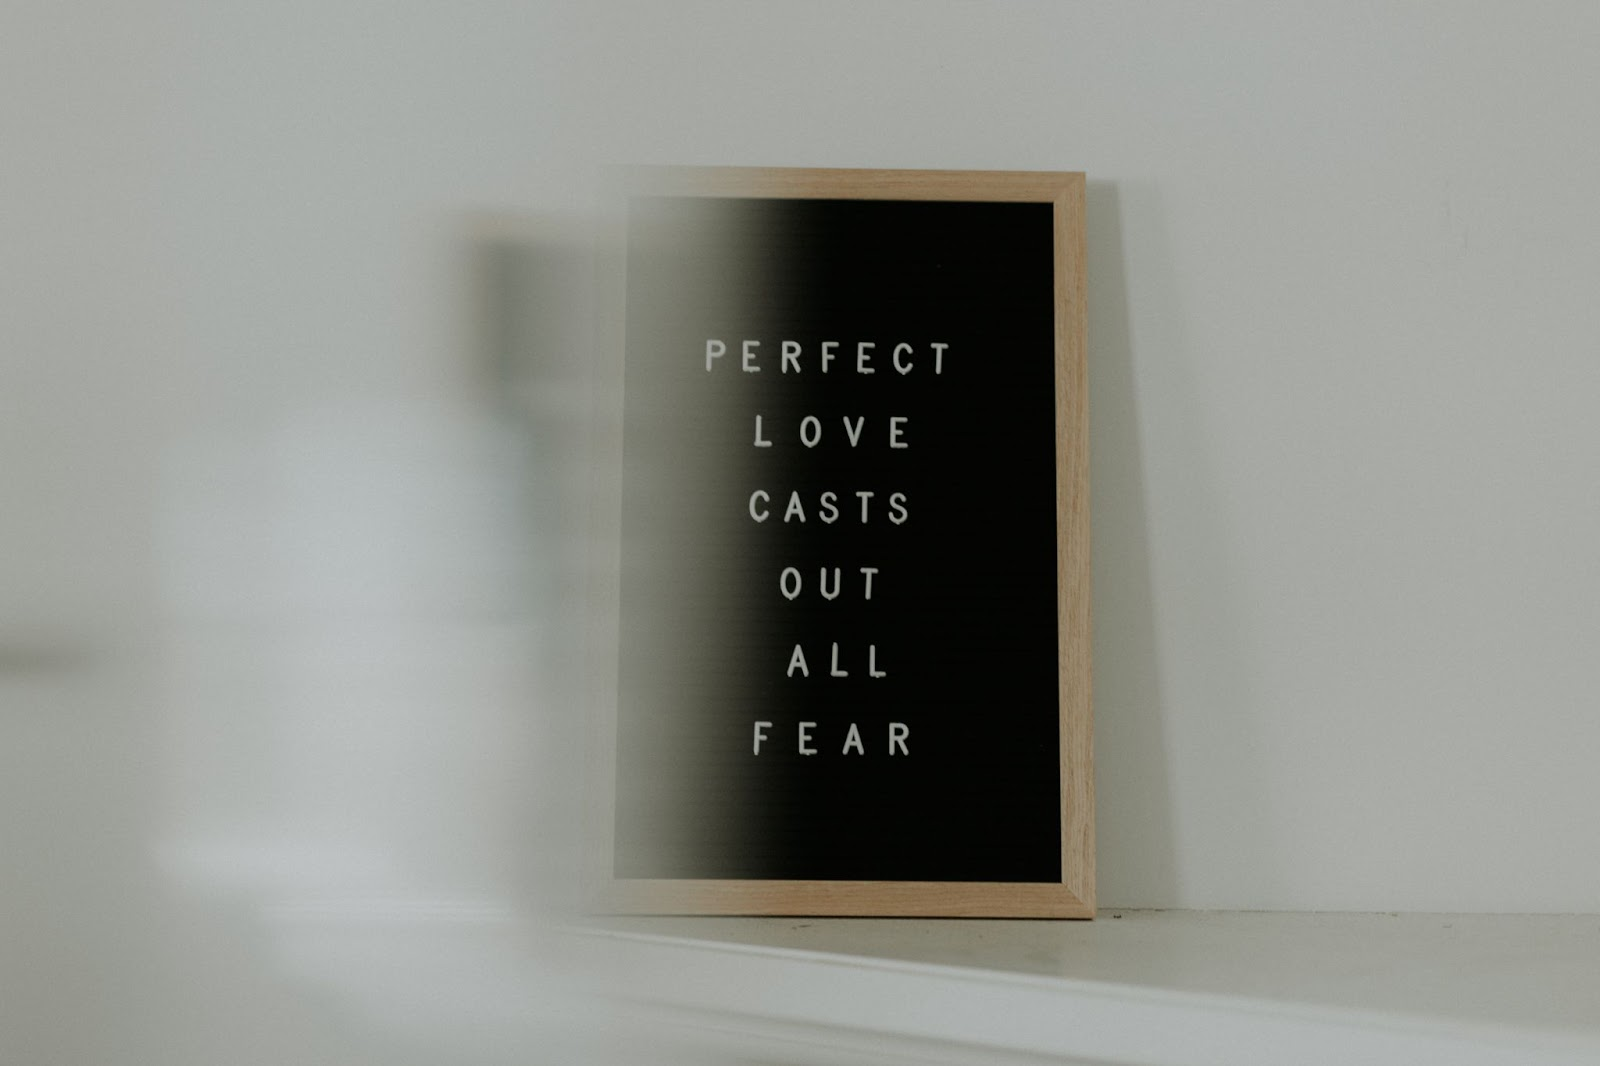 'Perfect love casts out all fear' spelled out on letter board